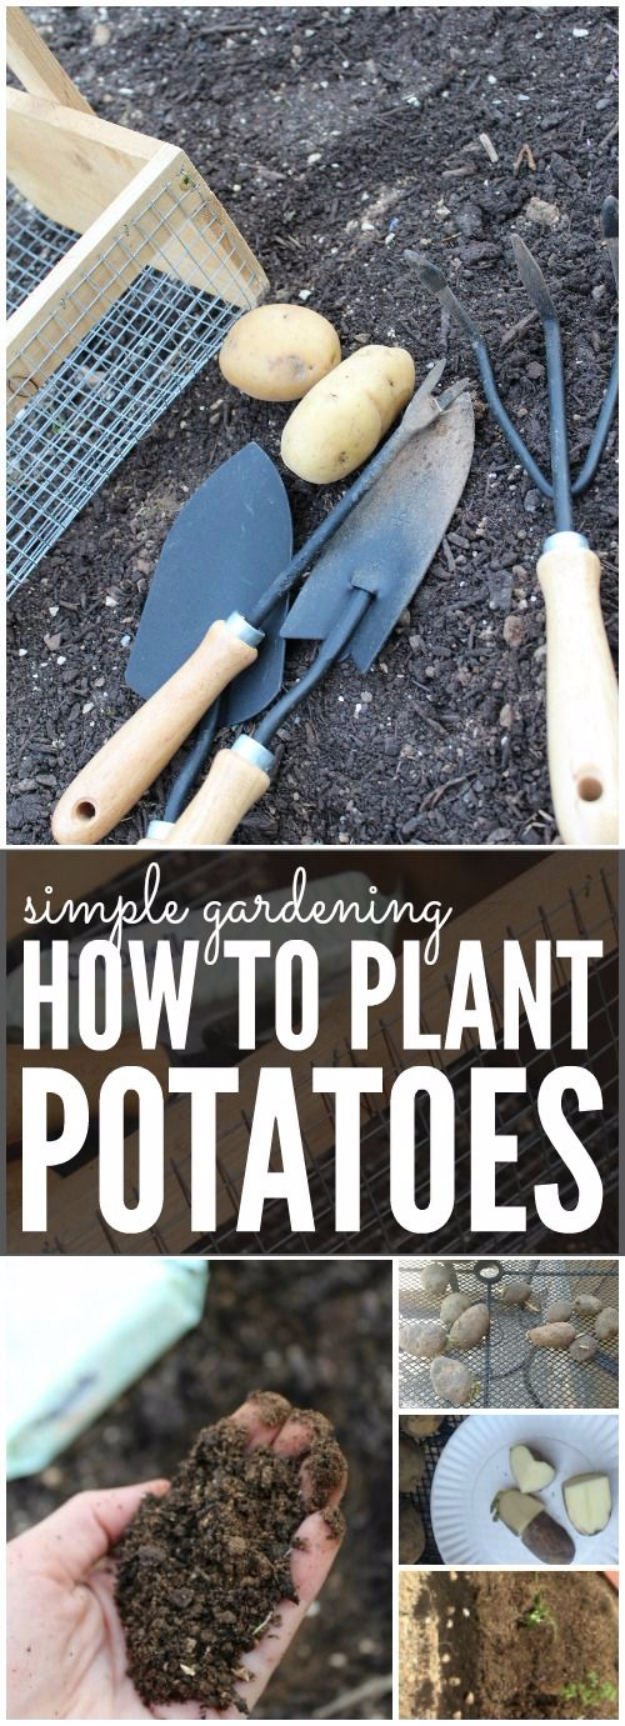 DIY Spring Gardening Projects - Planting Potatoes For Spring - Cool and Easy Planting Tips for Spring Garden - Step by Step Tutorials for Growing Seeds, Plants, Vegetables and Flowers in You Yard - DIY Project Ideas for Women and Men - Creative and Quick Backyard Ideas For Summer